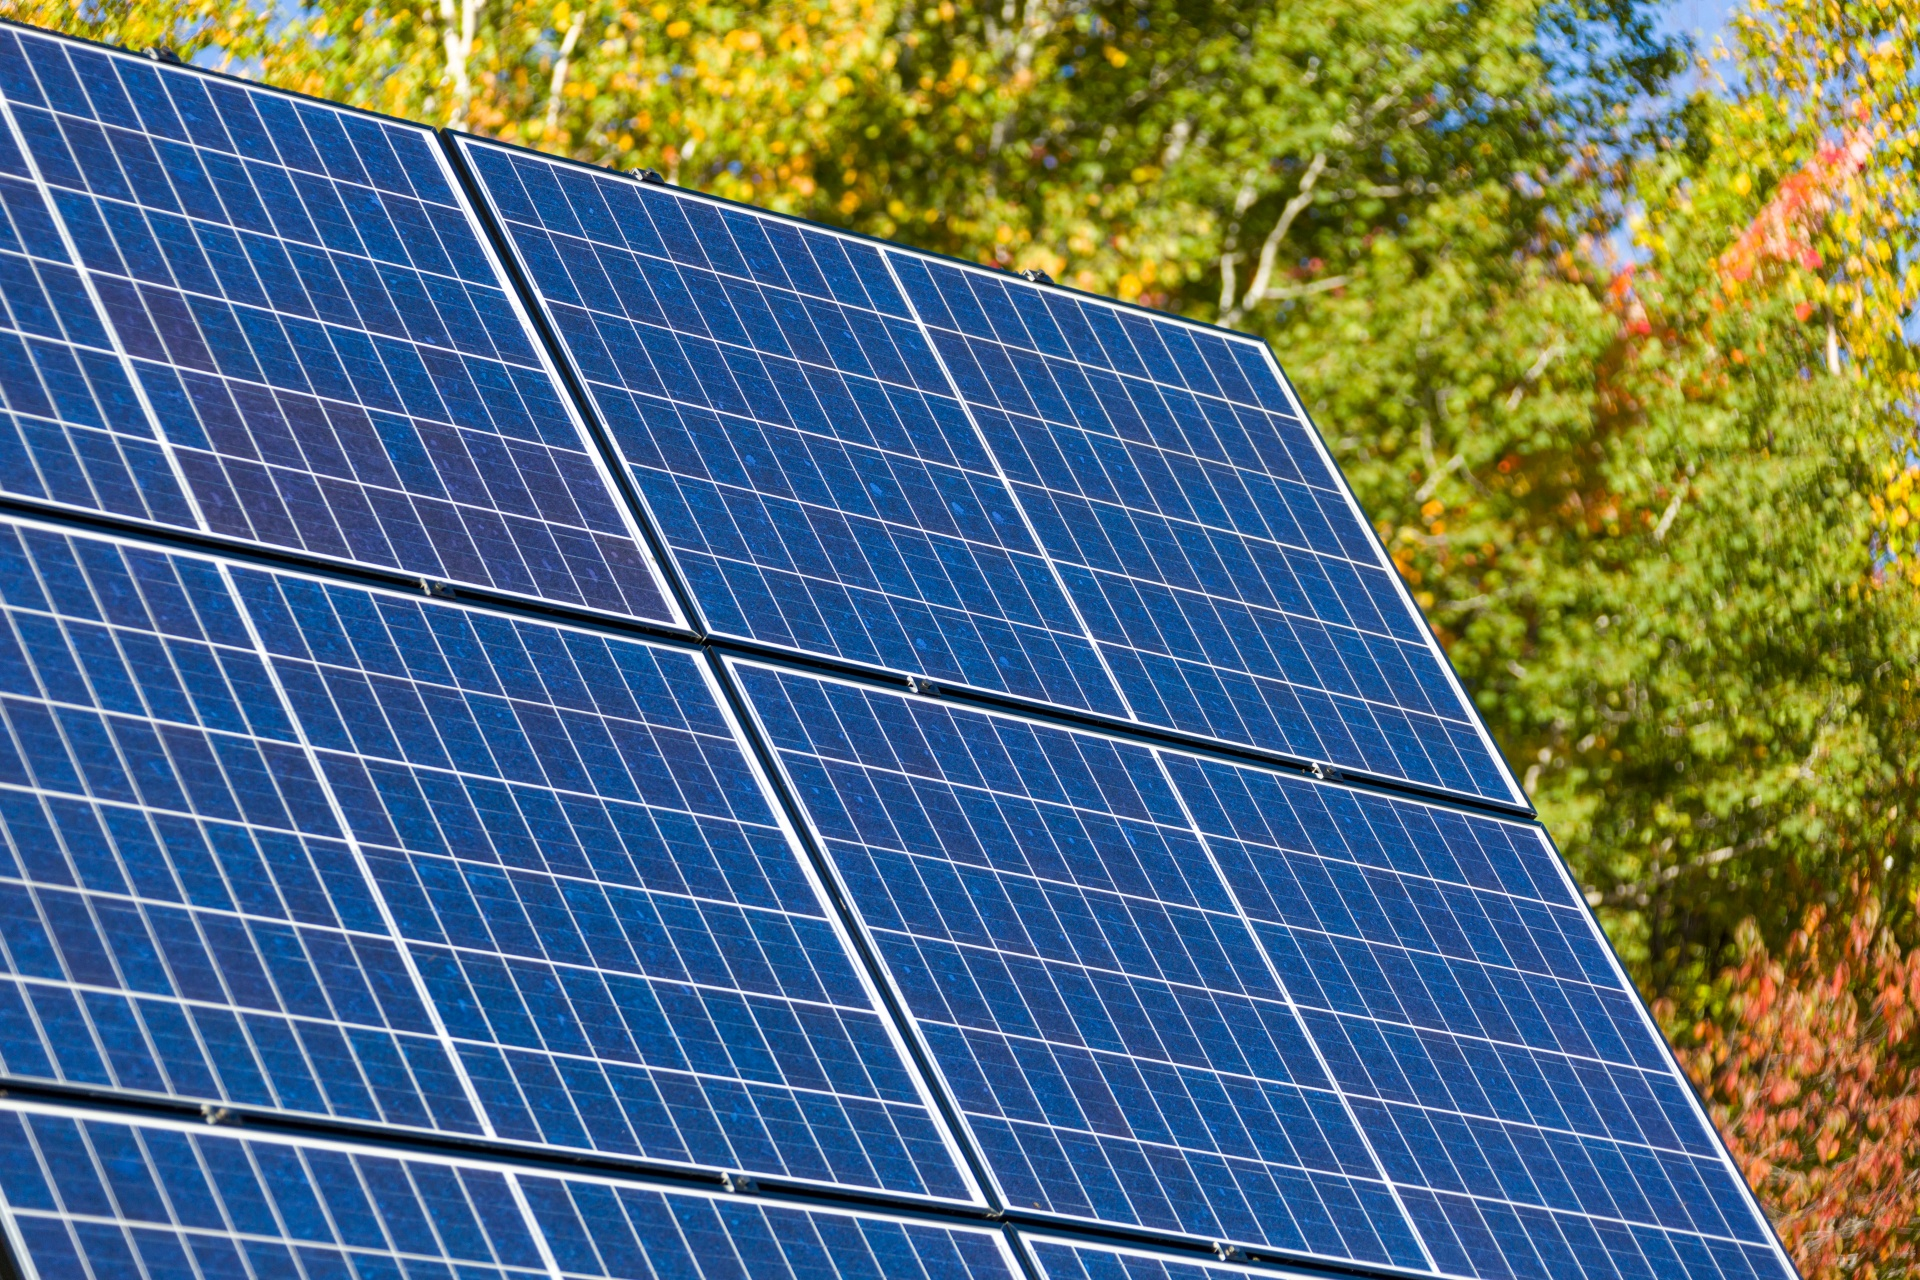 Why should I invest in renewable energy?